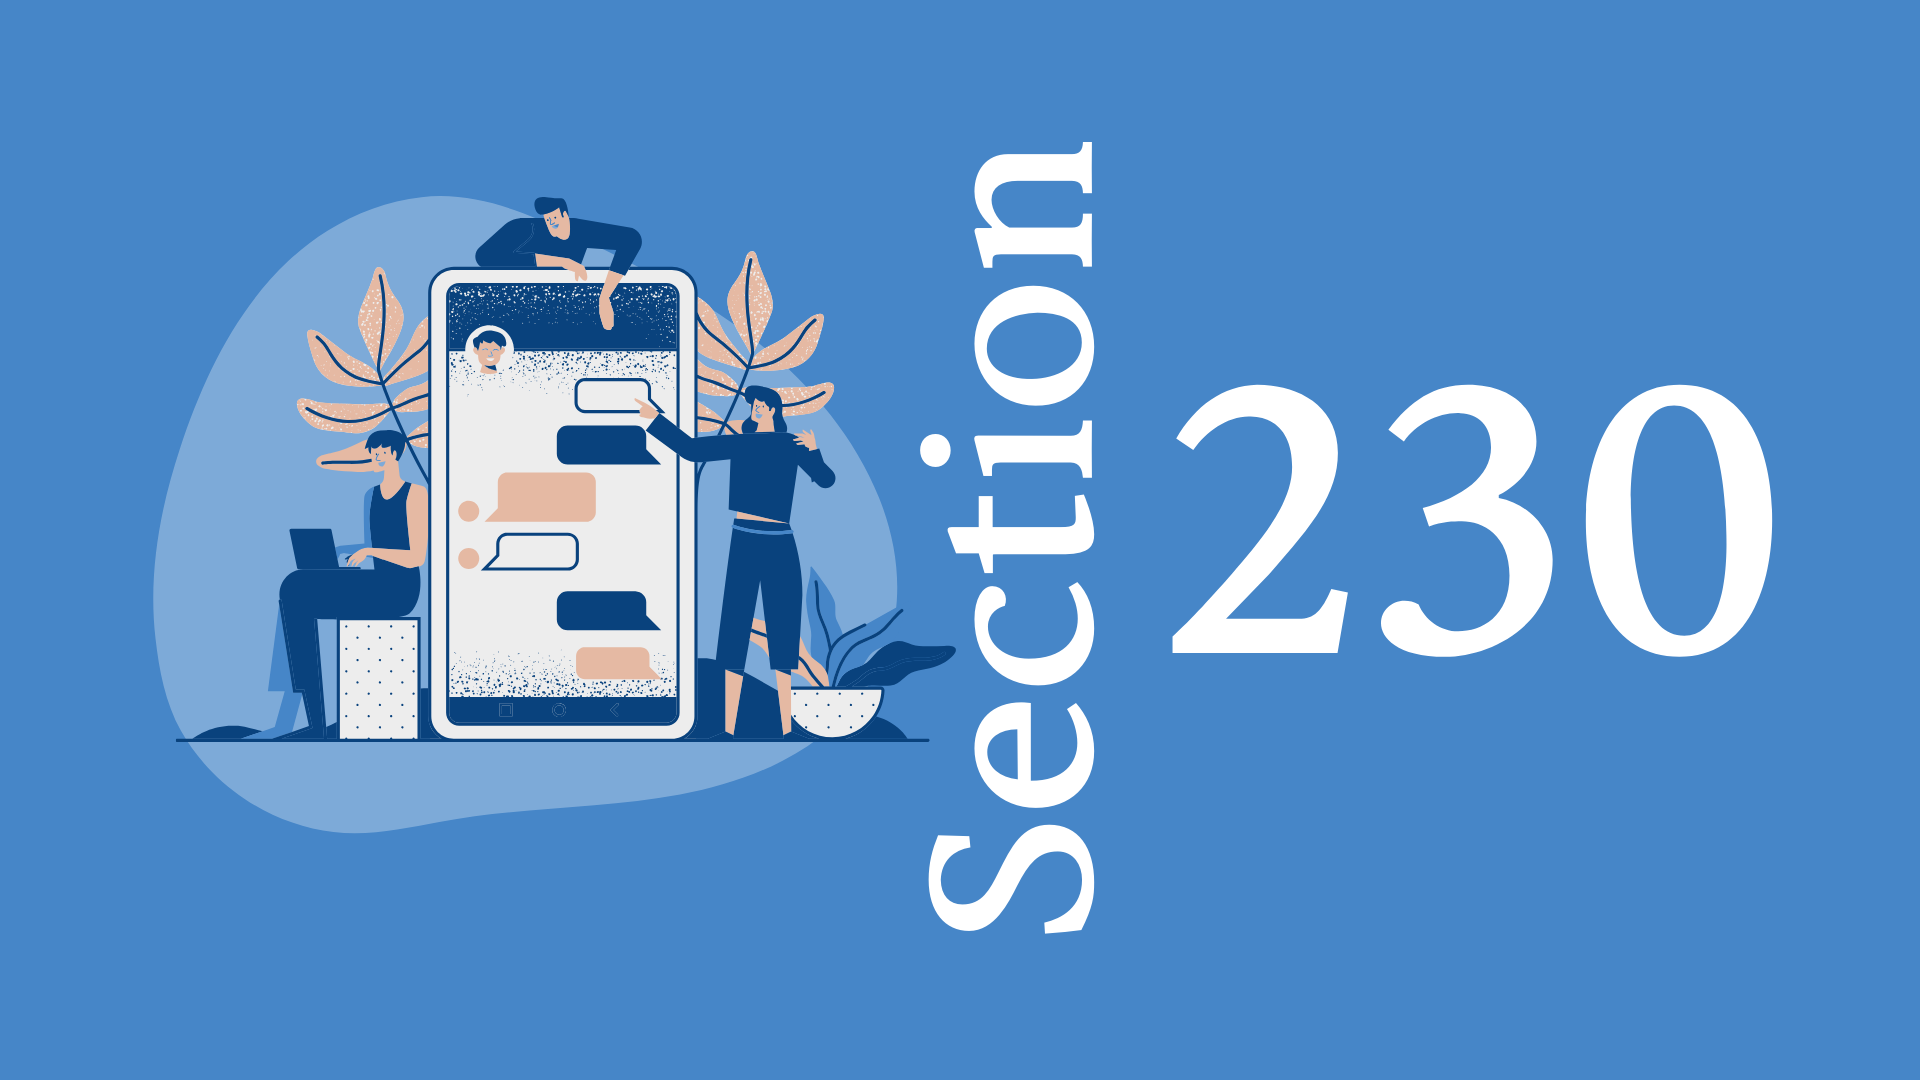 EVERYTHING YOU NEED TO KNOW ABOUT SECTION 230 The most important law for online speech